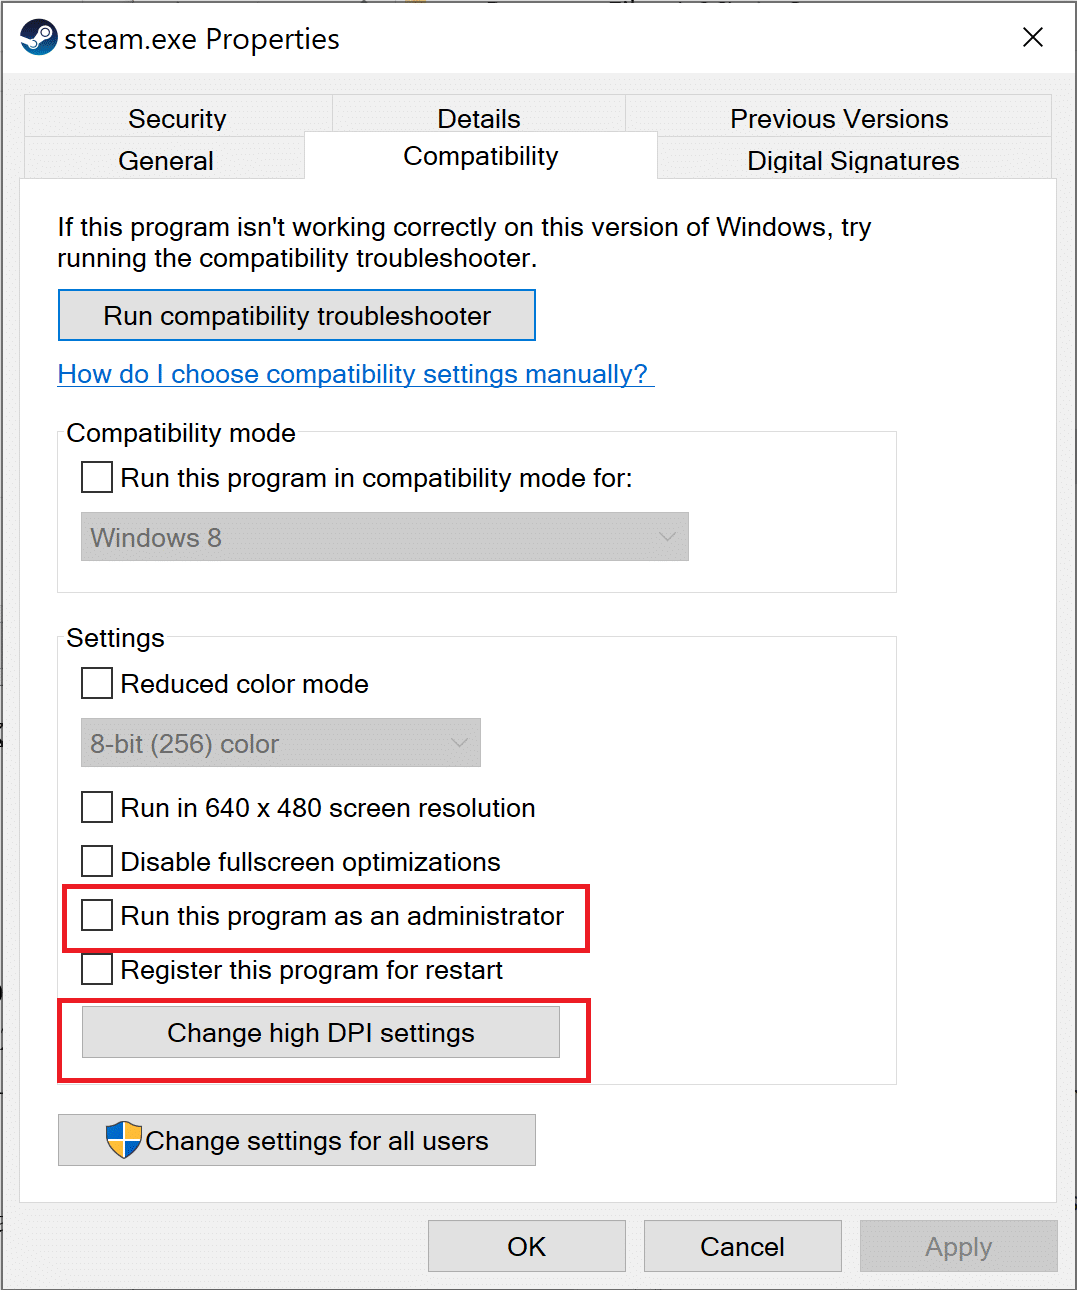 check the box 'Run this program as an administrator' and click on Change high DPI settings